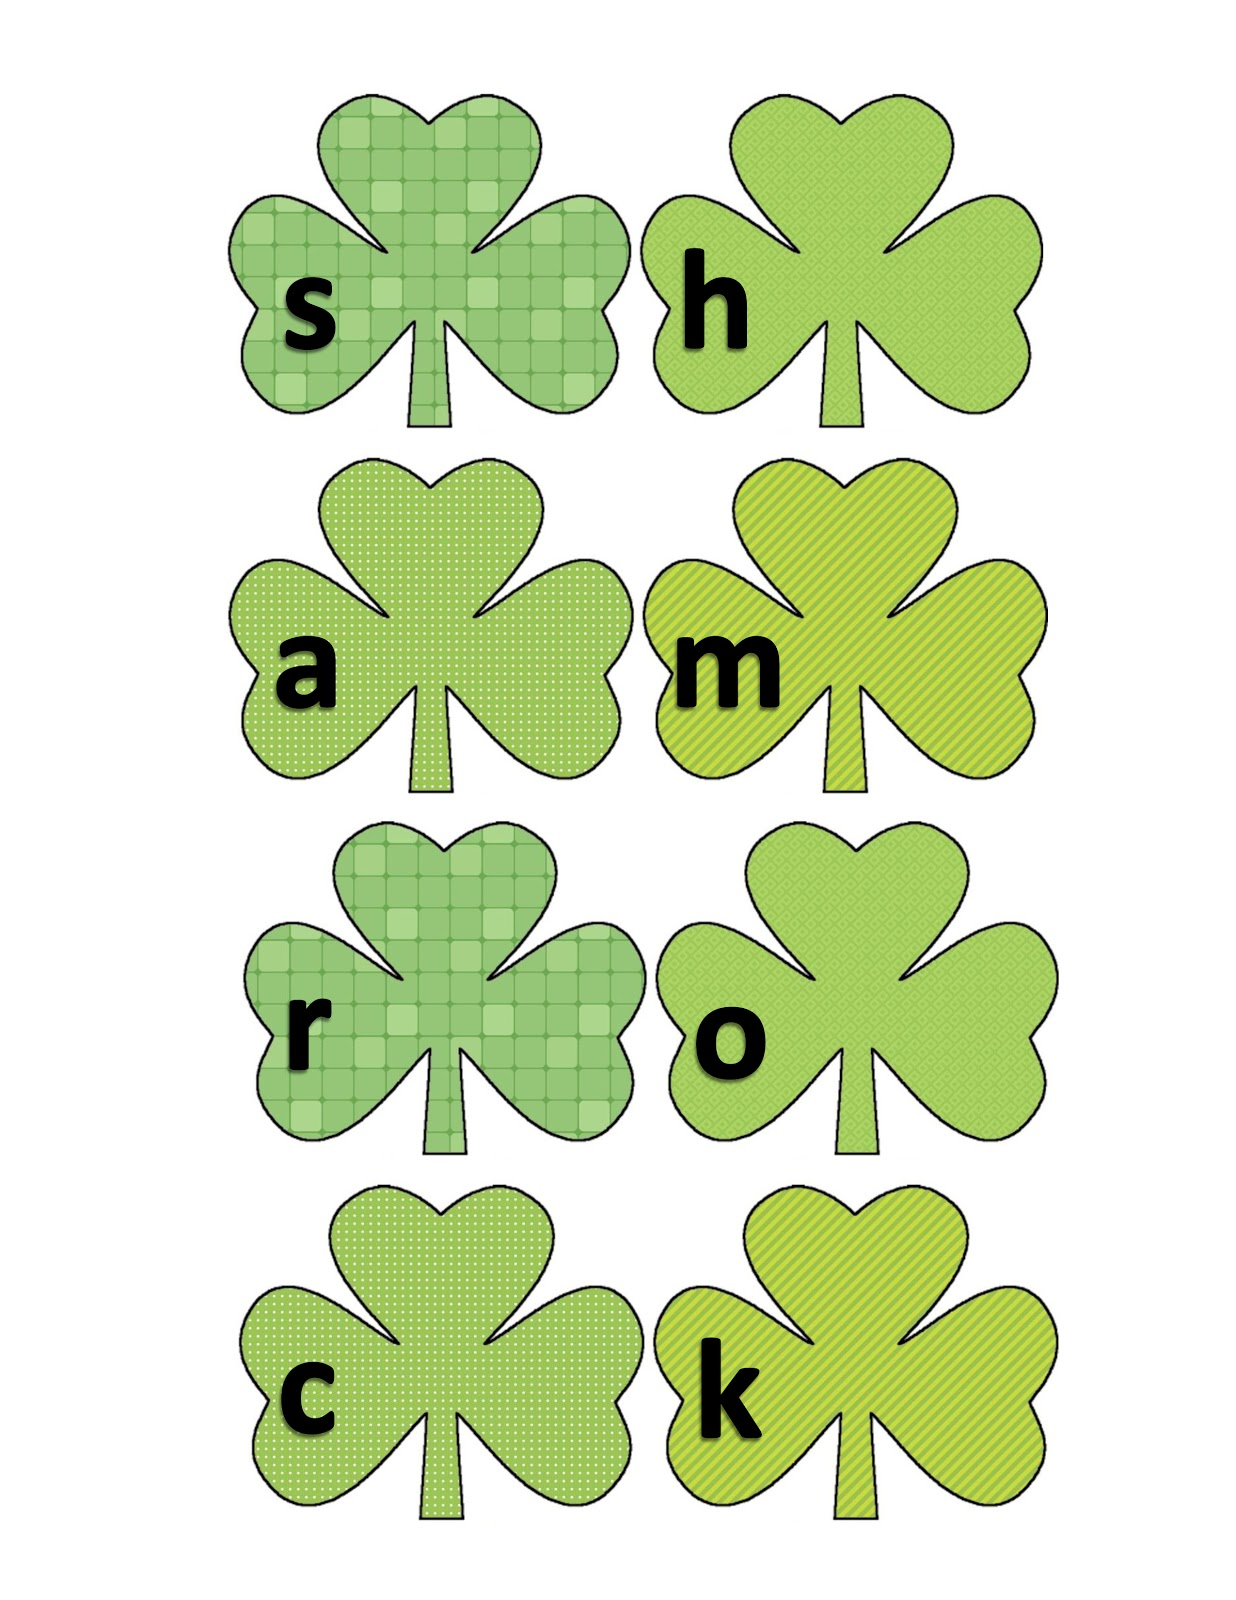 ourhomecreations: St Patrick's Day shamrock pattern